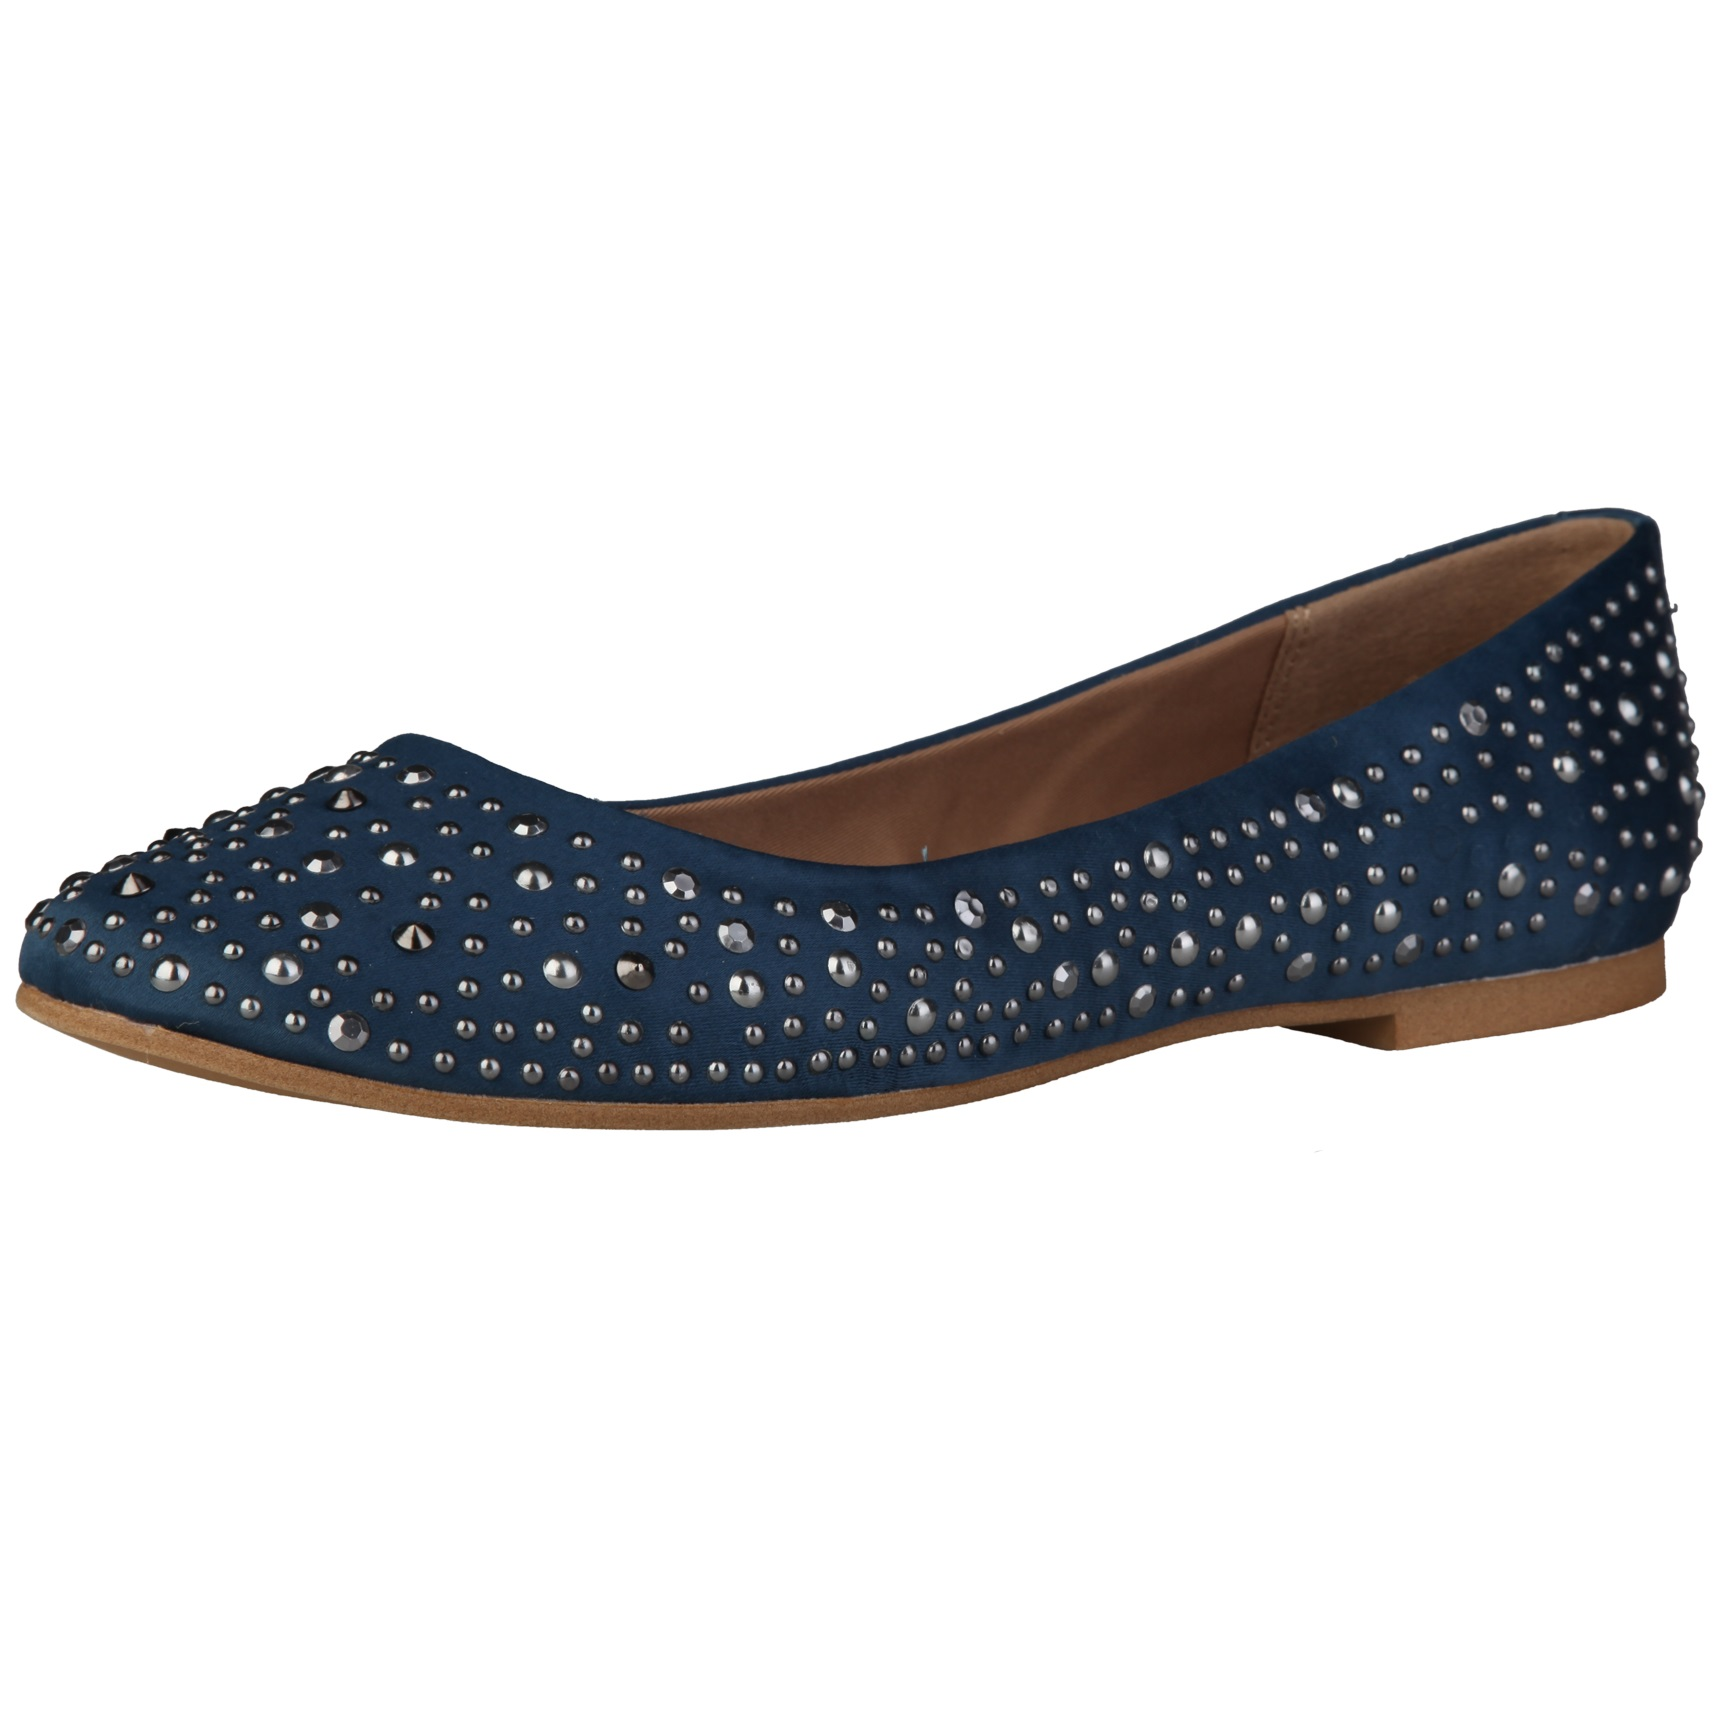 Sofia Loes Flat Shoes Navy Rf600153